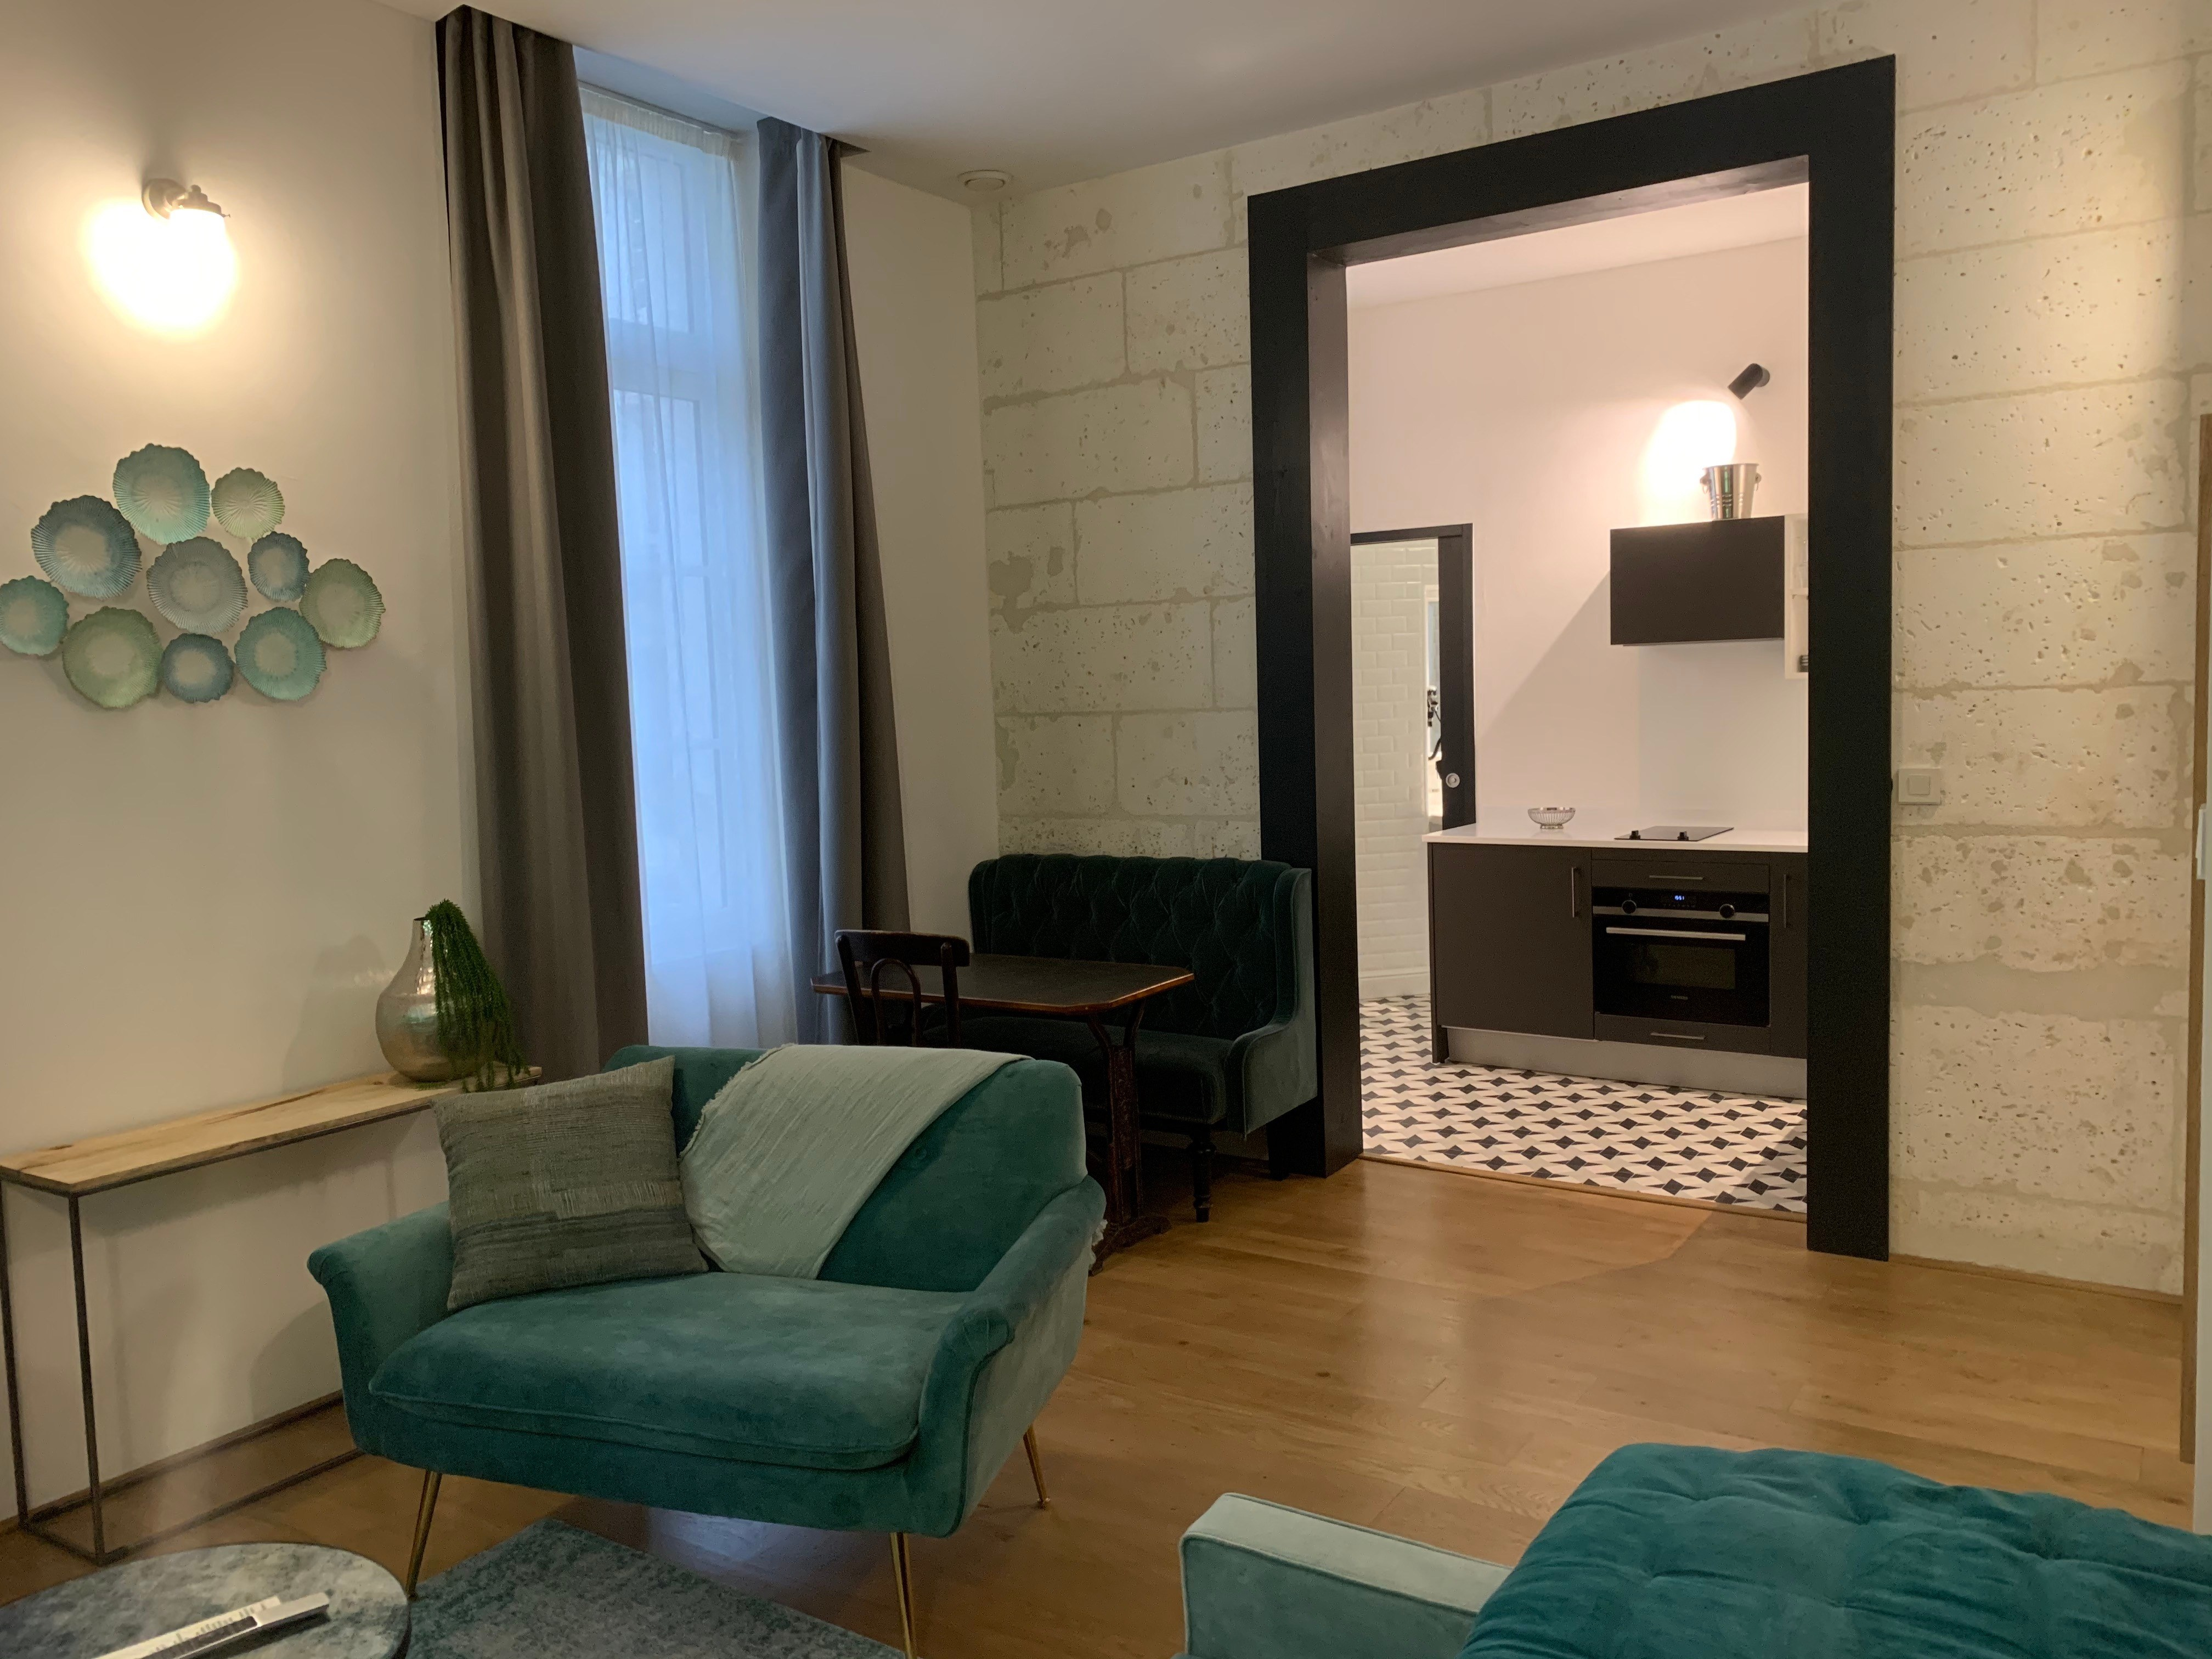 appart-hotel-angouleme-studio-paon-coin repas